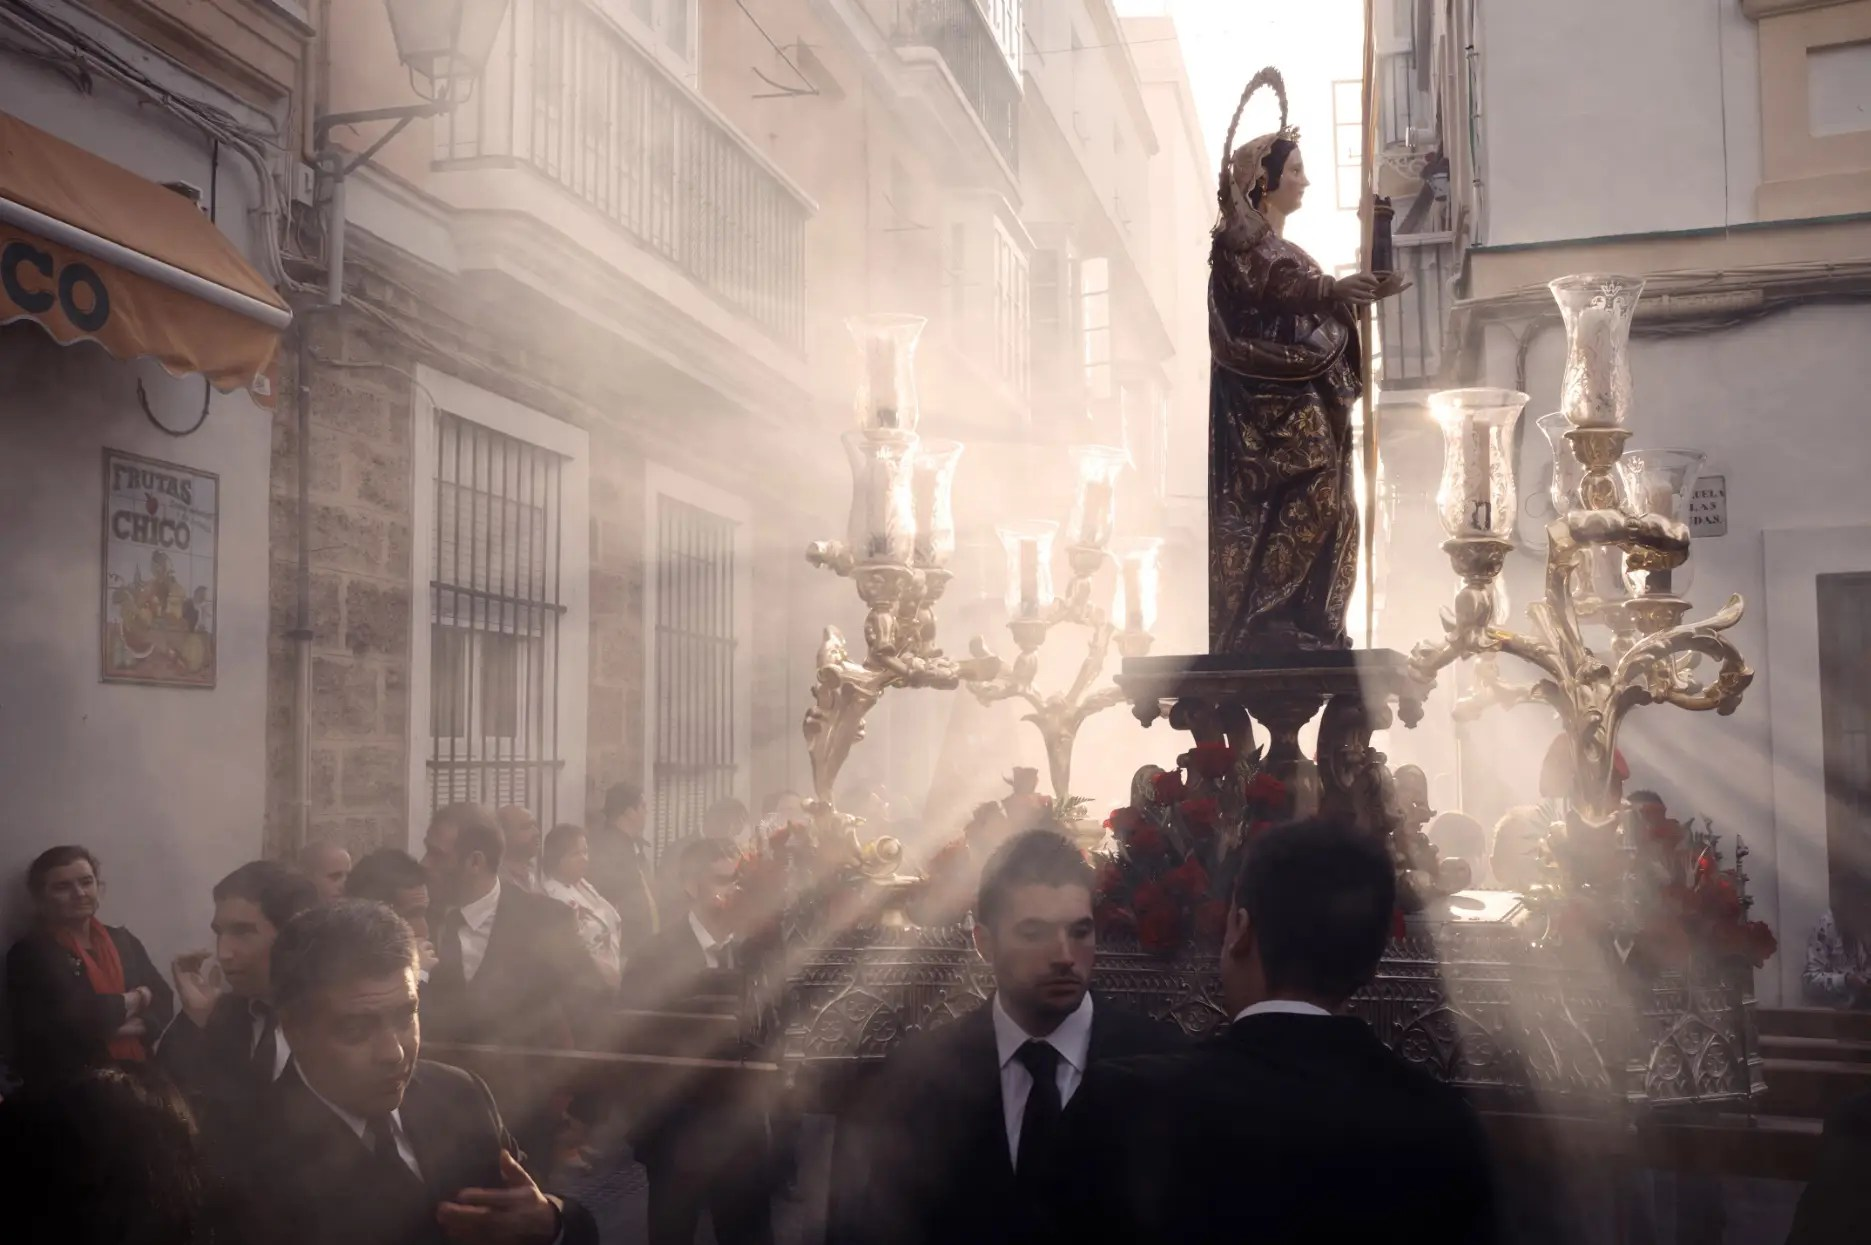 Religious procession in Cadiz, Spain